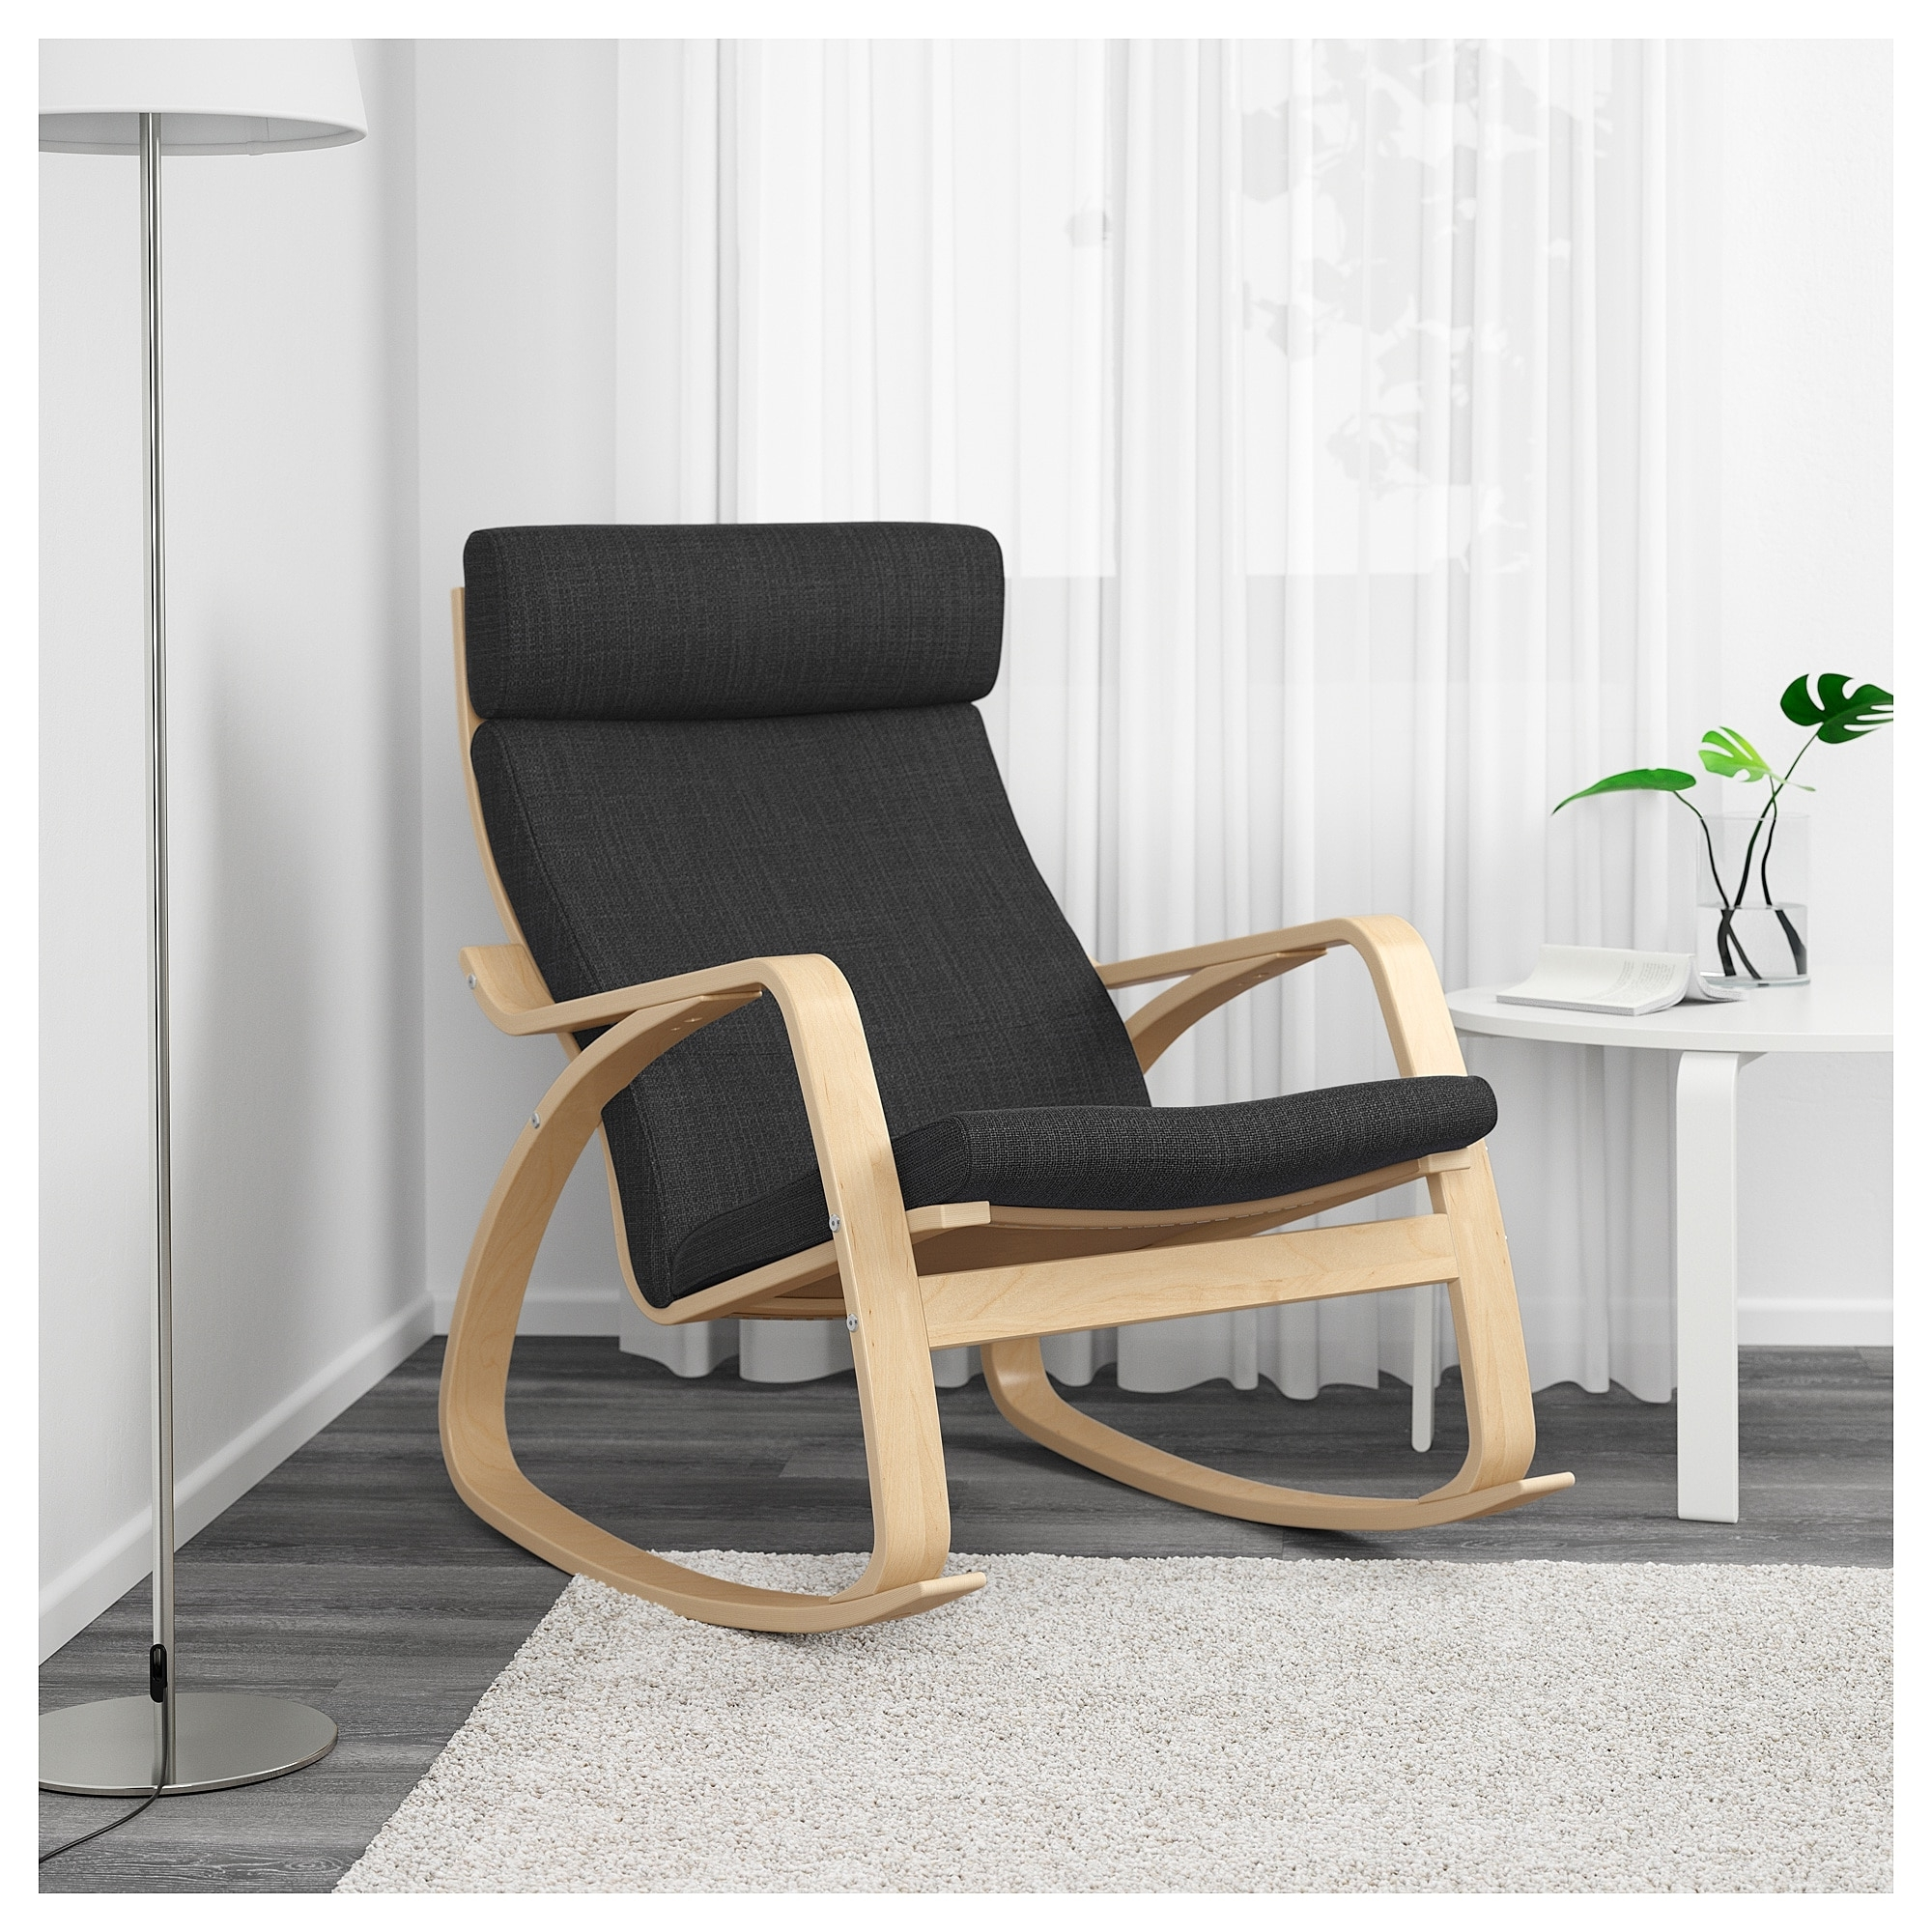 Ikea Rocking Chairs Throughout Most Recent Poäng Rocking Chair Birch Veneer/hillared Anthracite – Ikea (View 10 of 20)